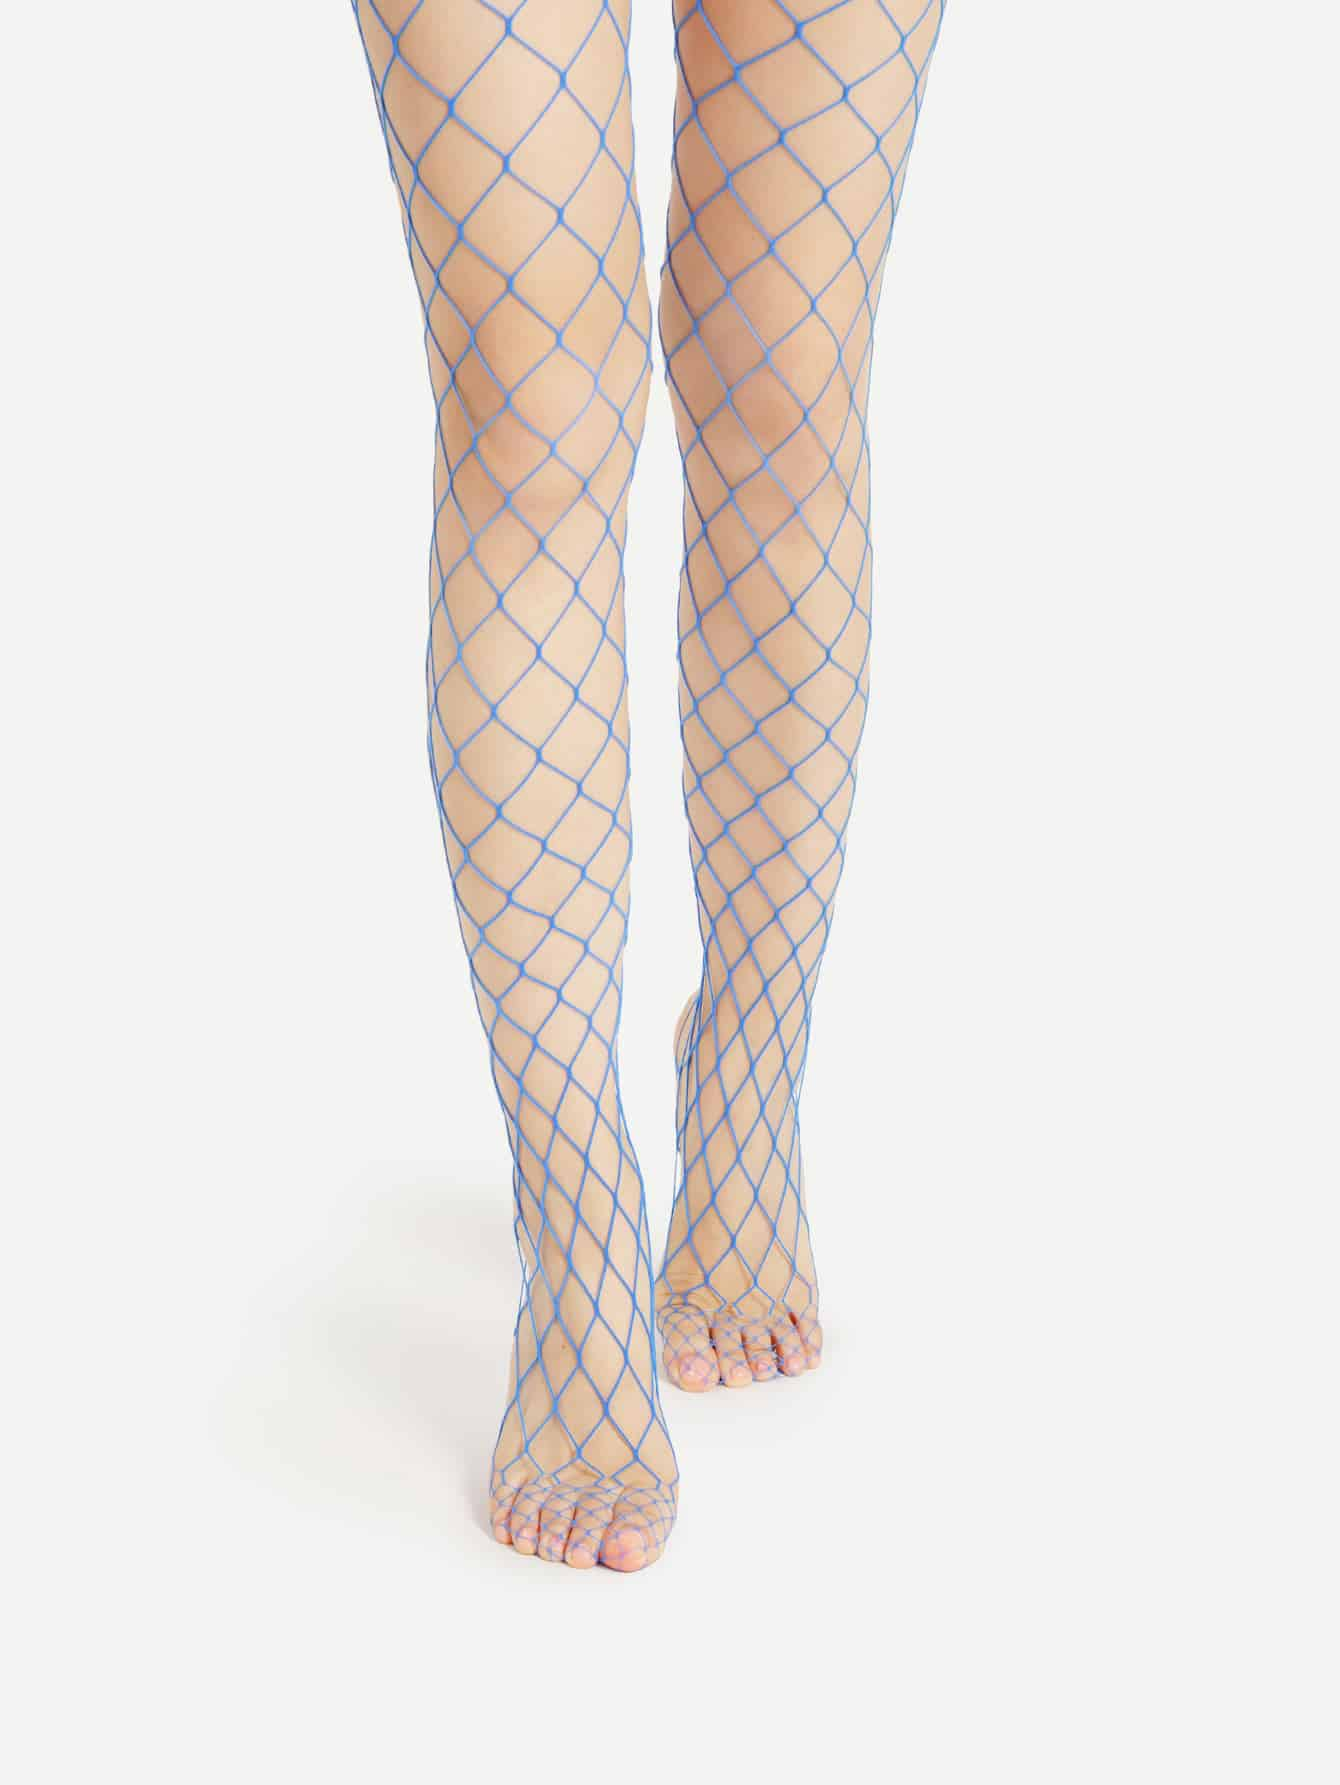 Hollow Out Fishnet Tights